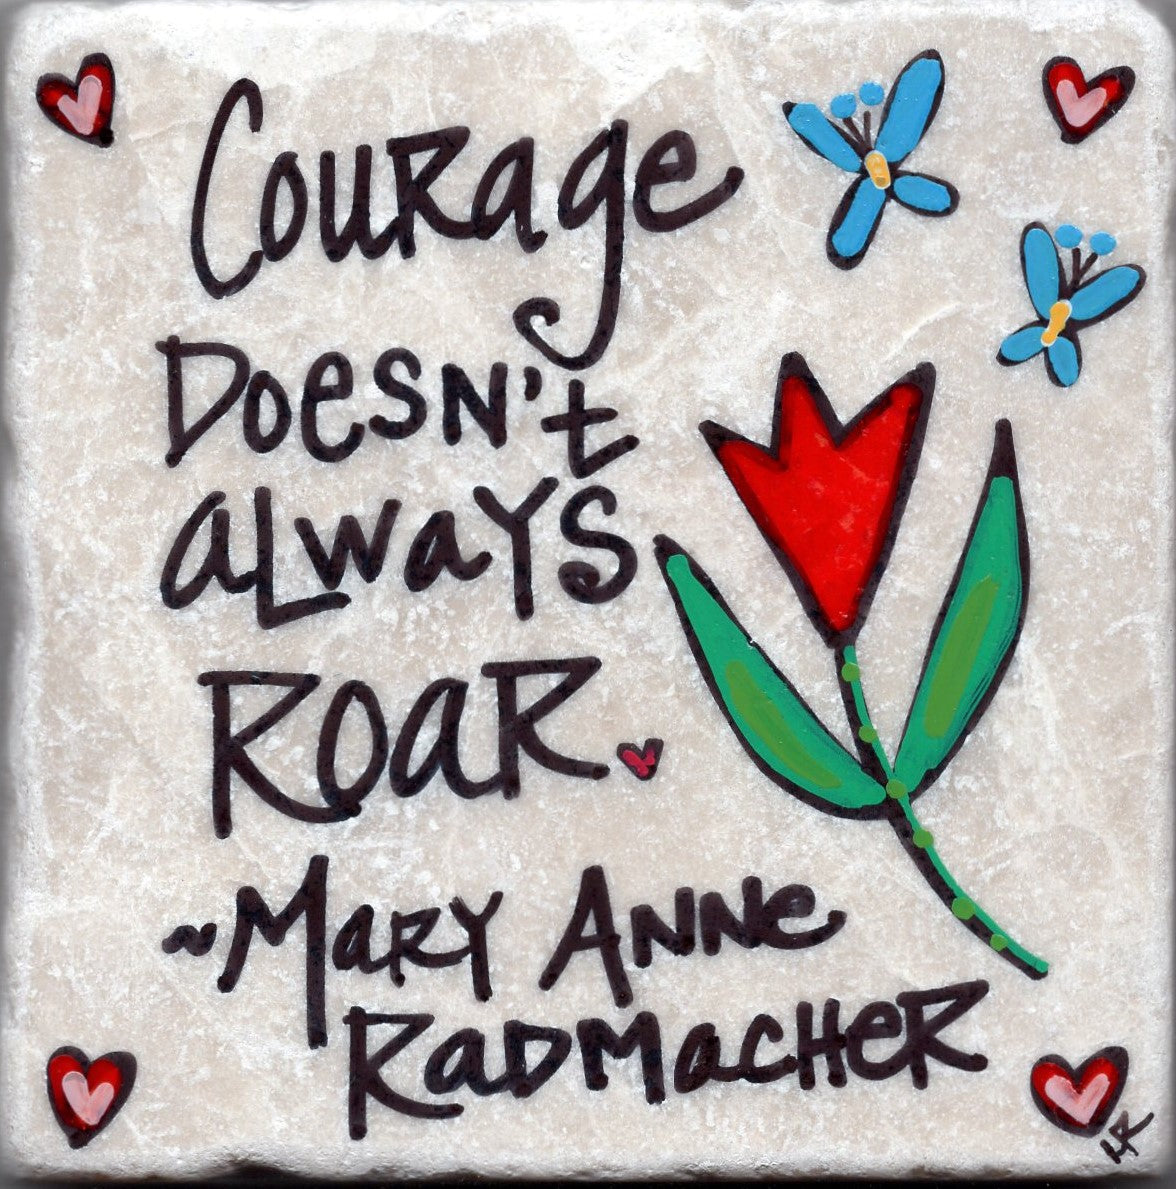 Care's Coasters - Courage Doesn't Always Roar